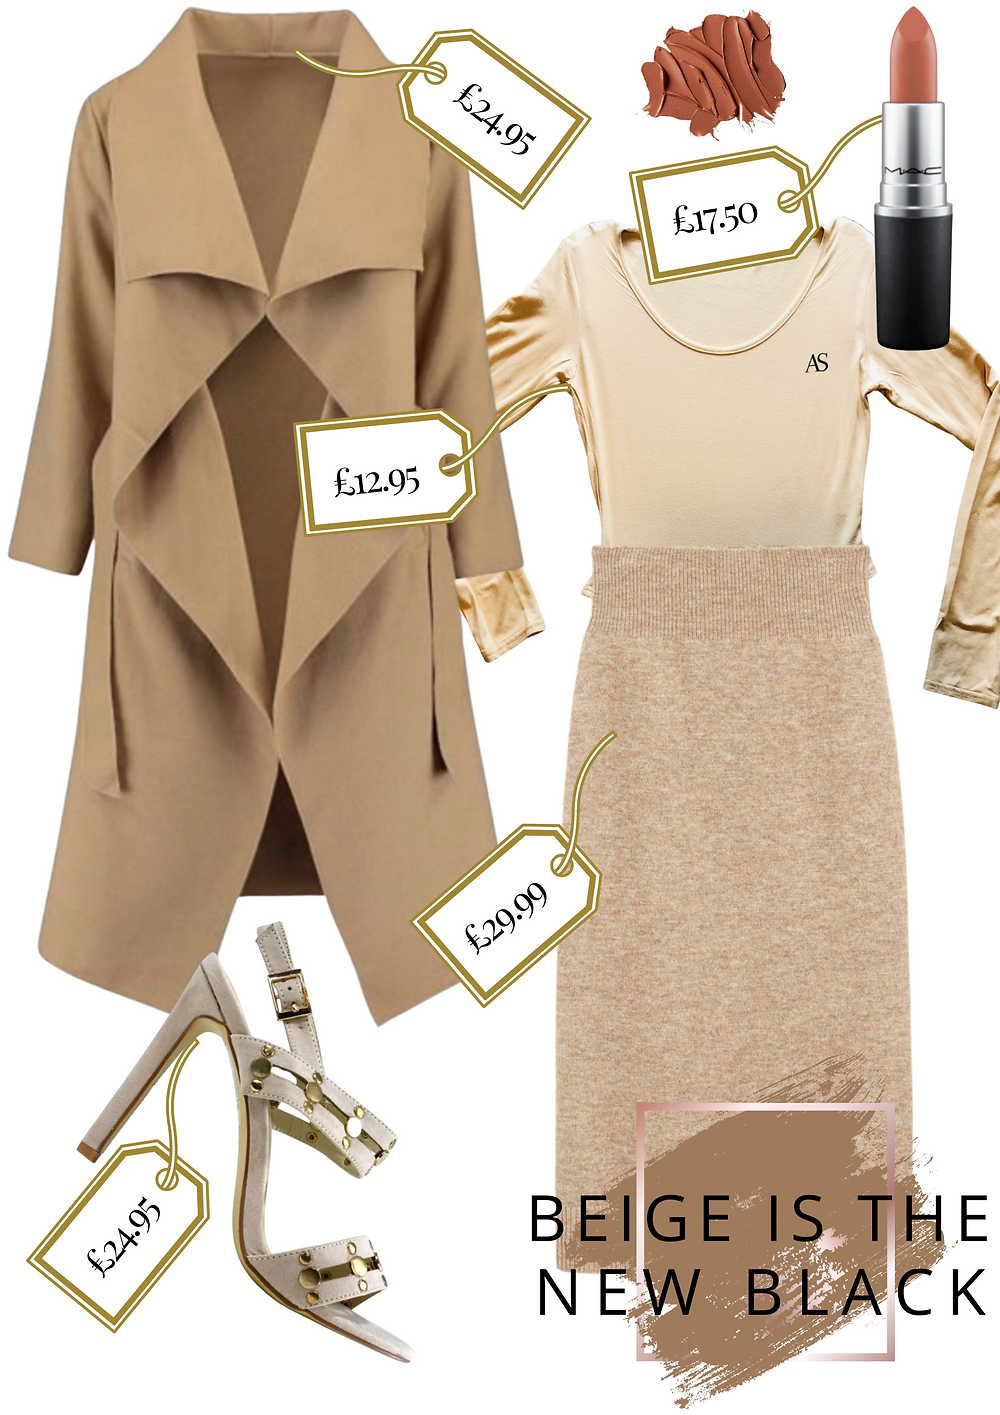 AGLESS WATERFALL COAT, AGLESS BEXLEY SANDALS, AGELESS CROPPED JERSEY TOP